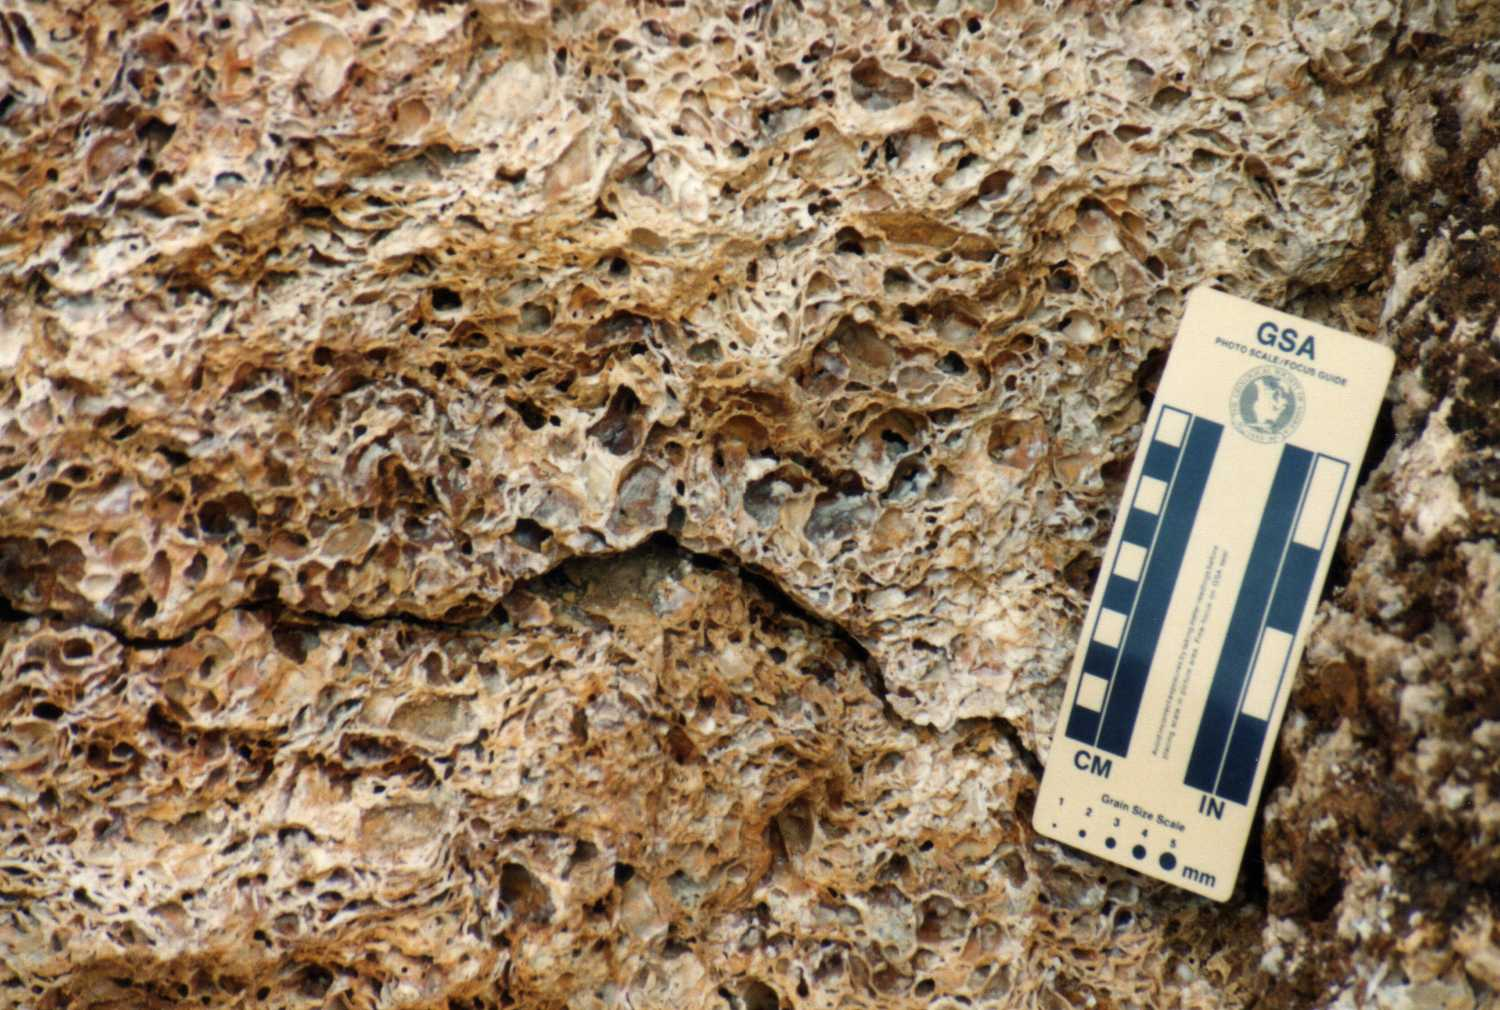 Unusual Fossil Occurrence in Travertine | Boneblogger ...